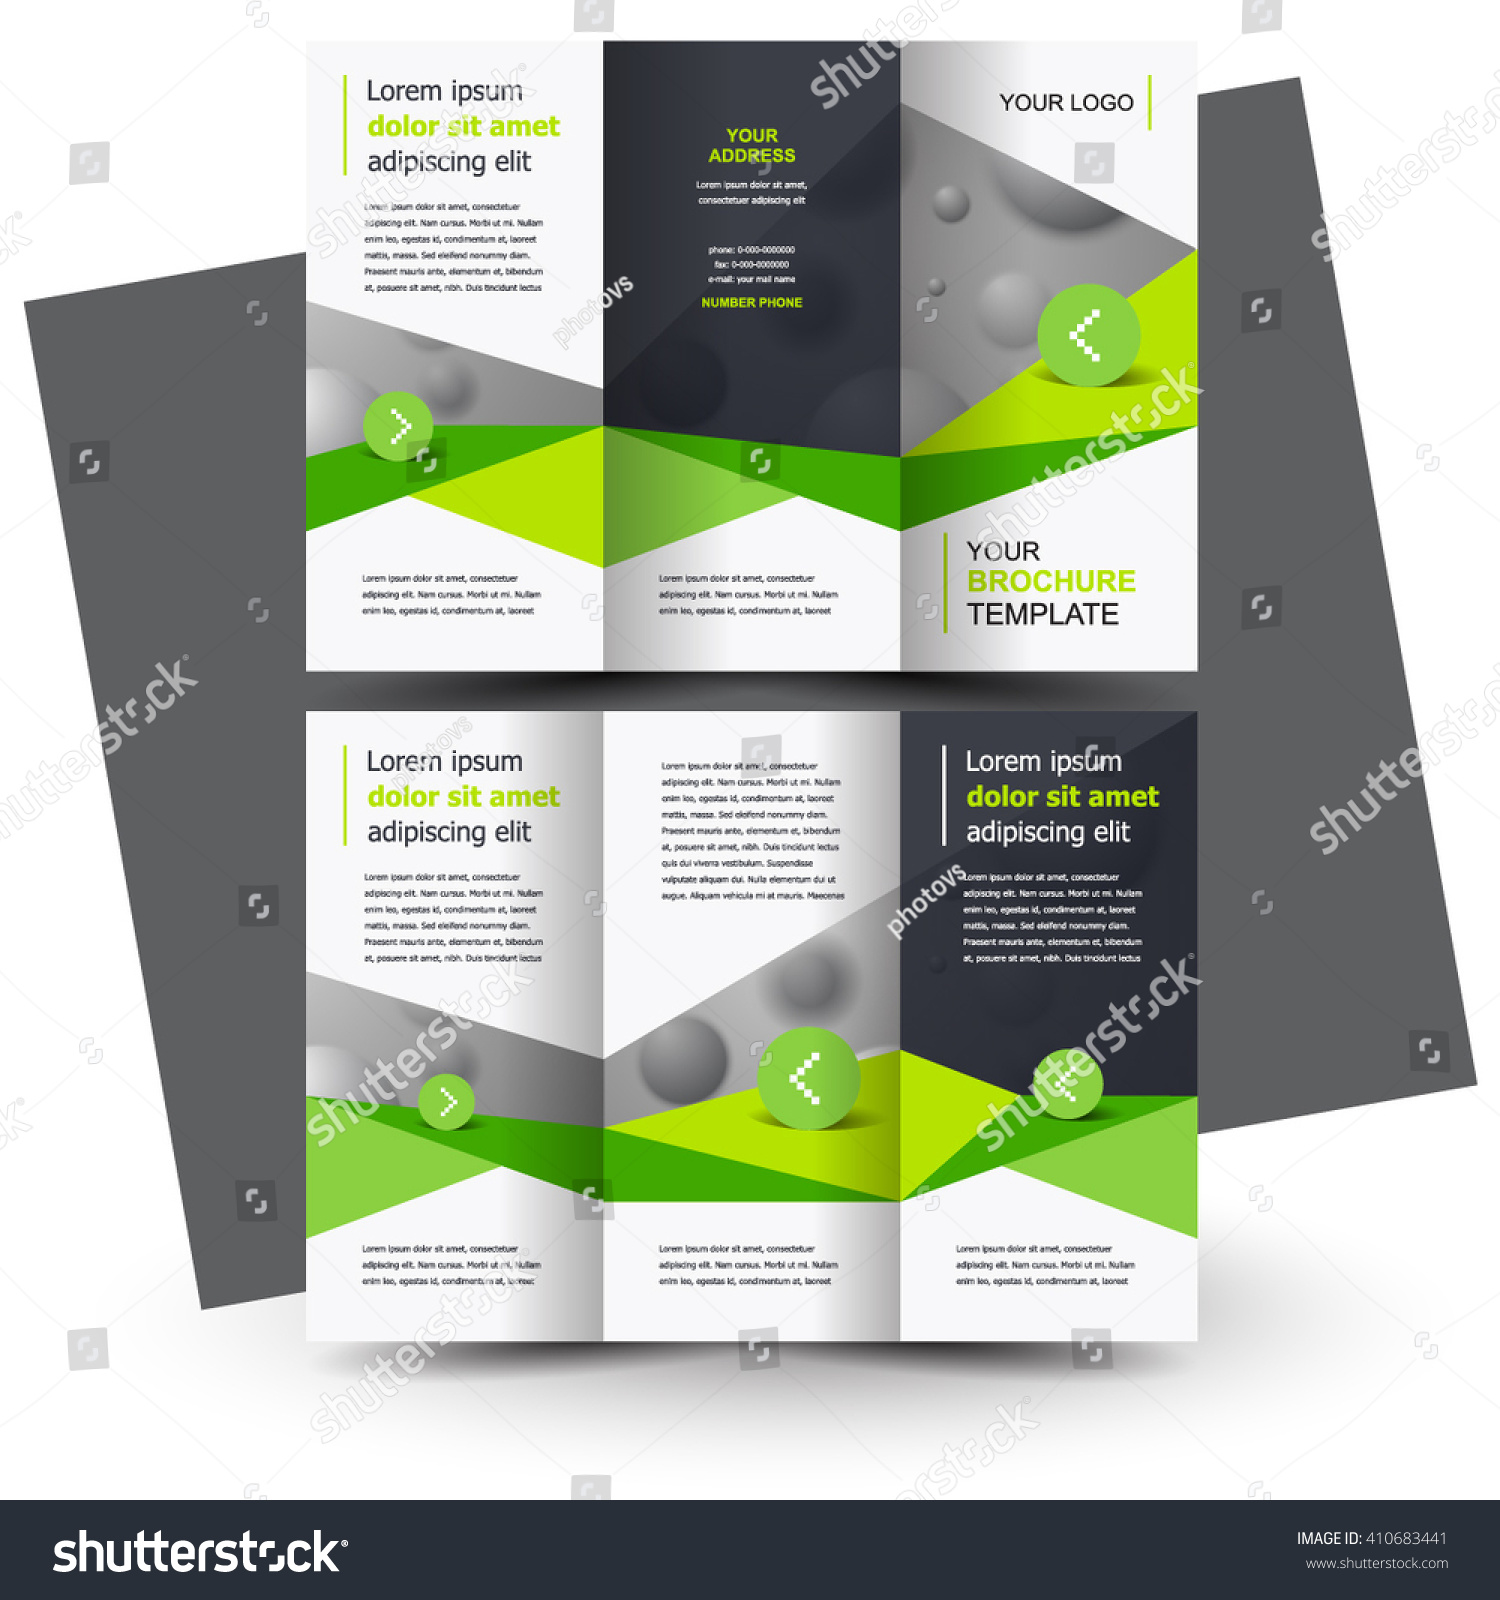 Brochure design business brochure template creative stock for Creative brochure template